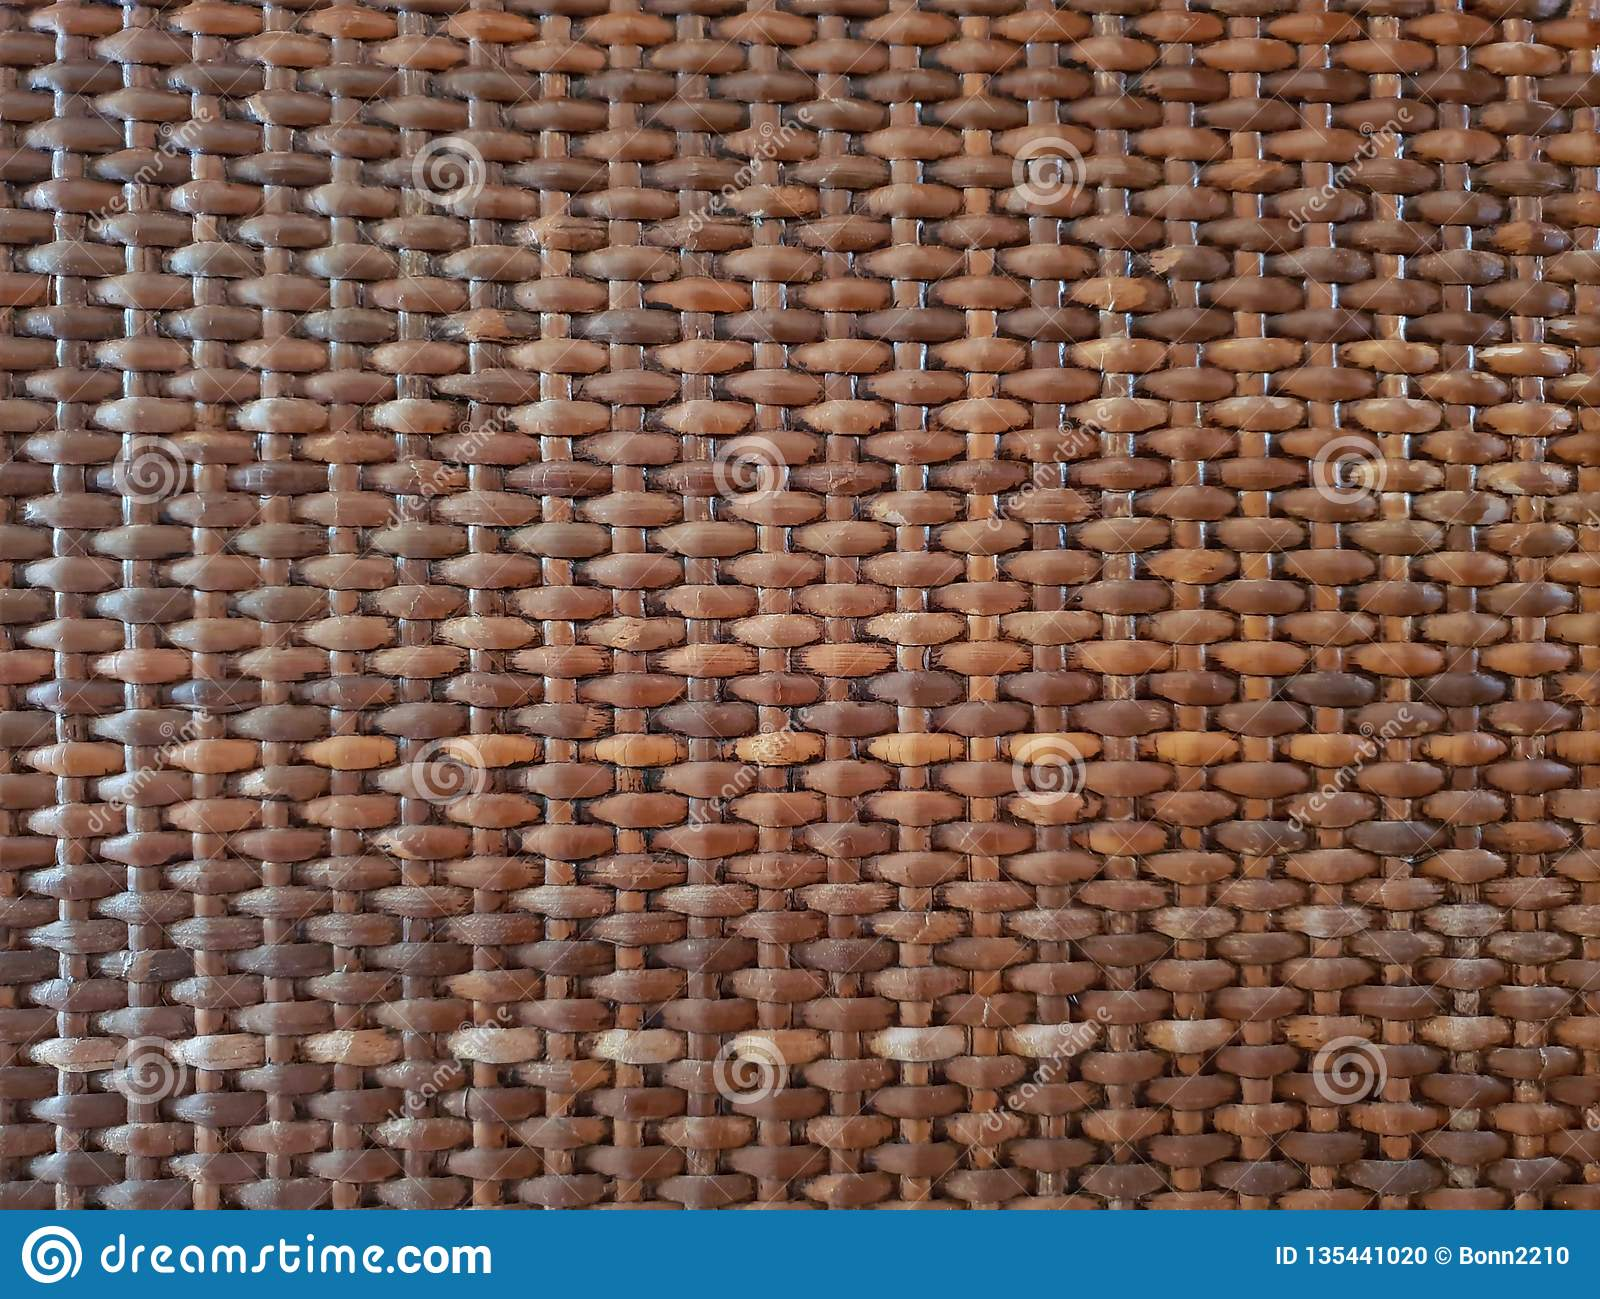 Wooden basket texture background wallpaper